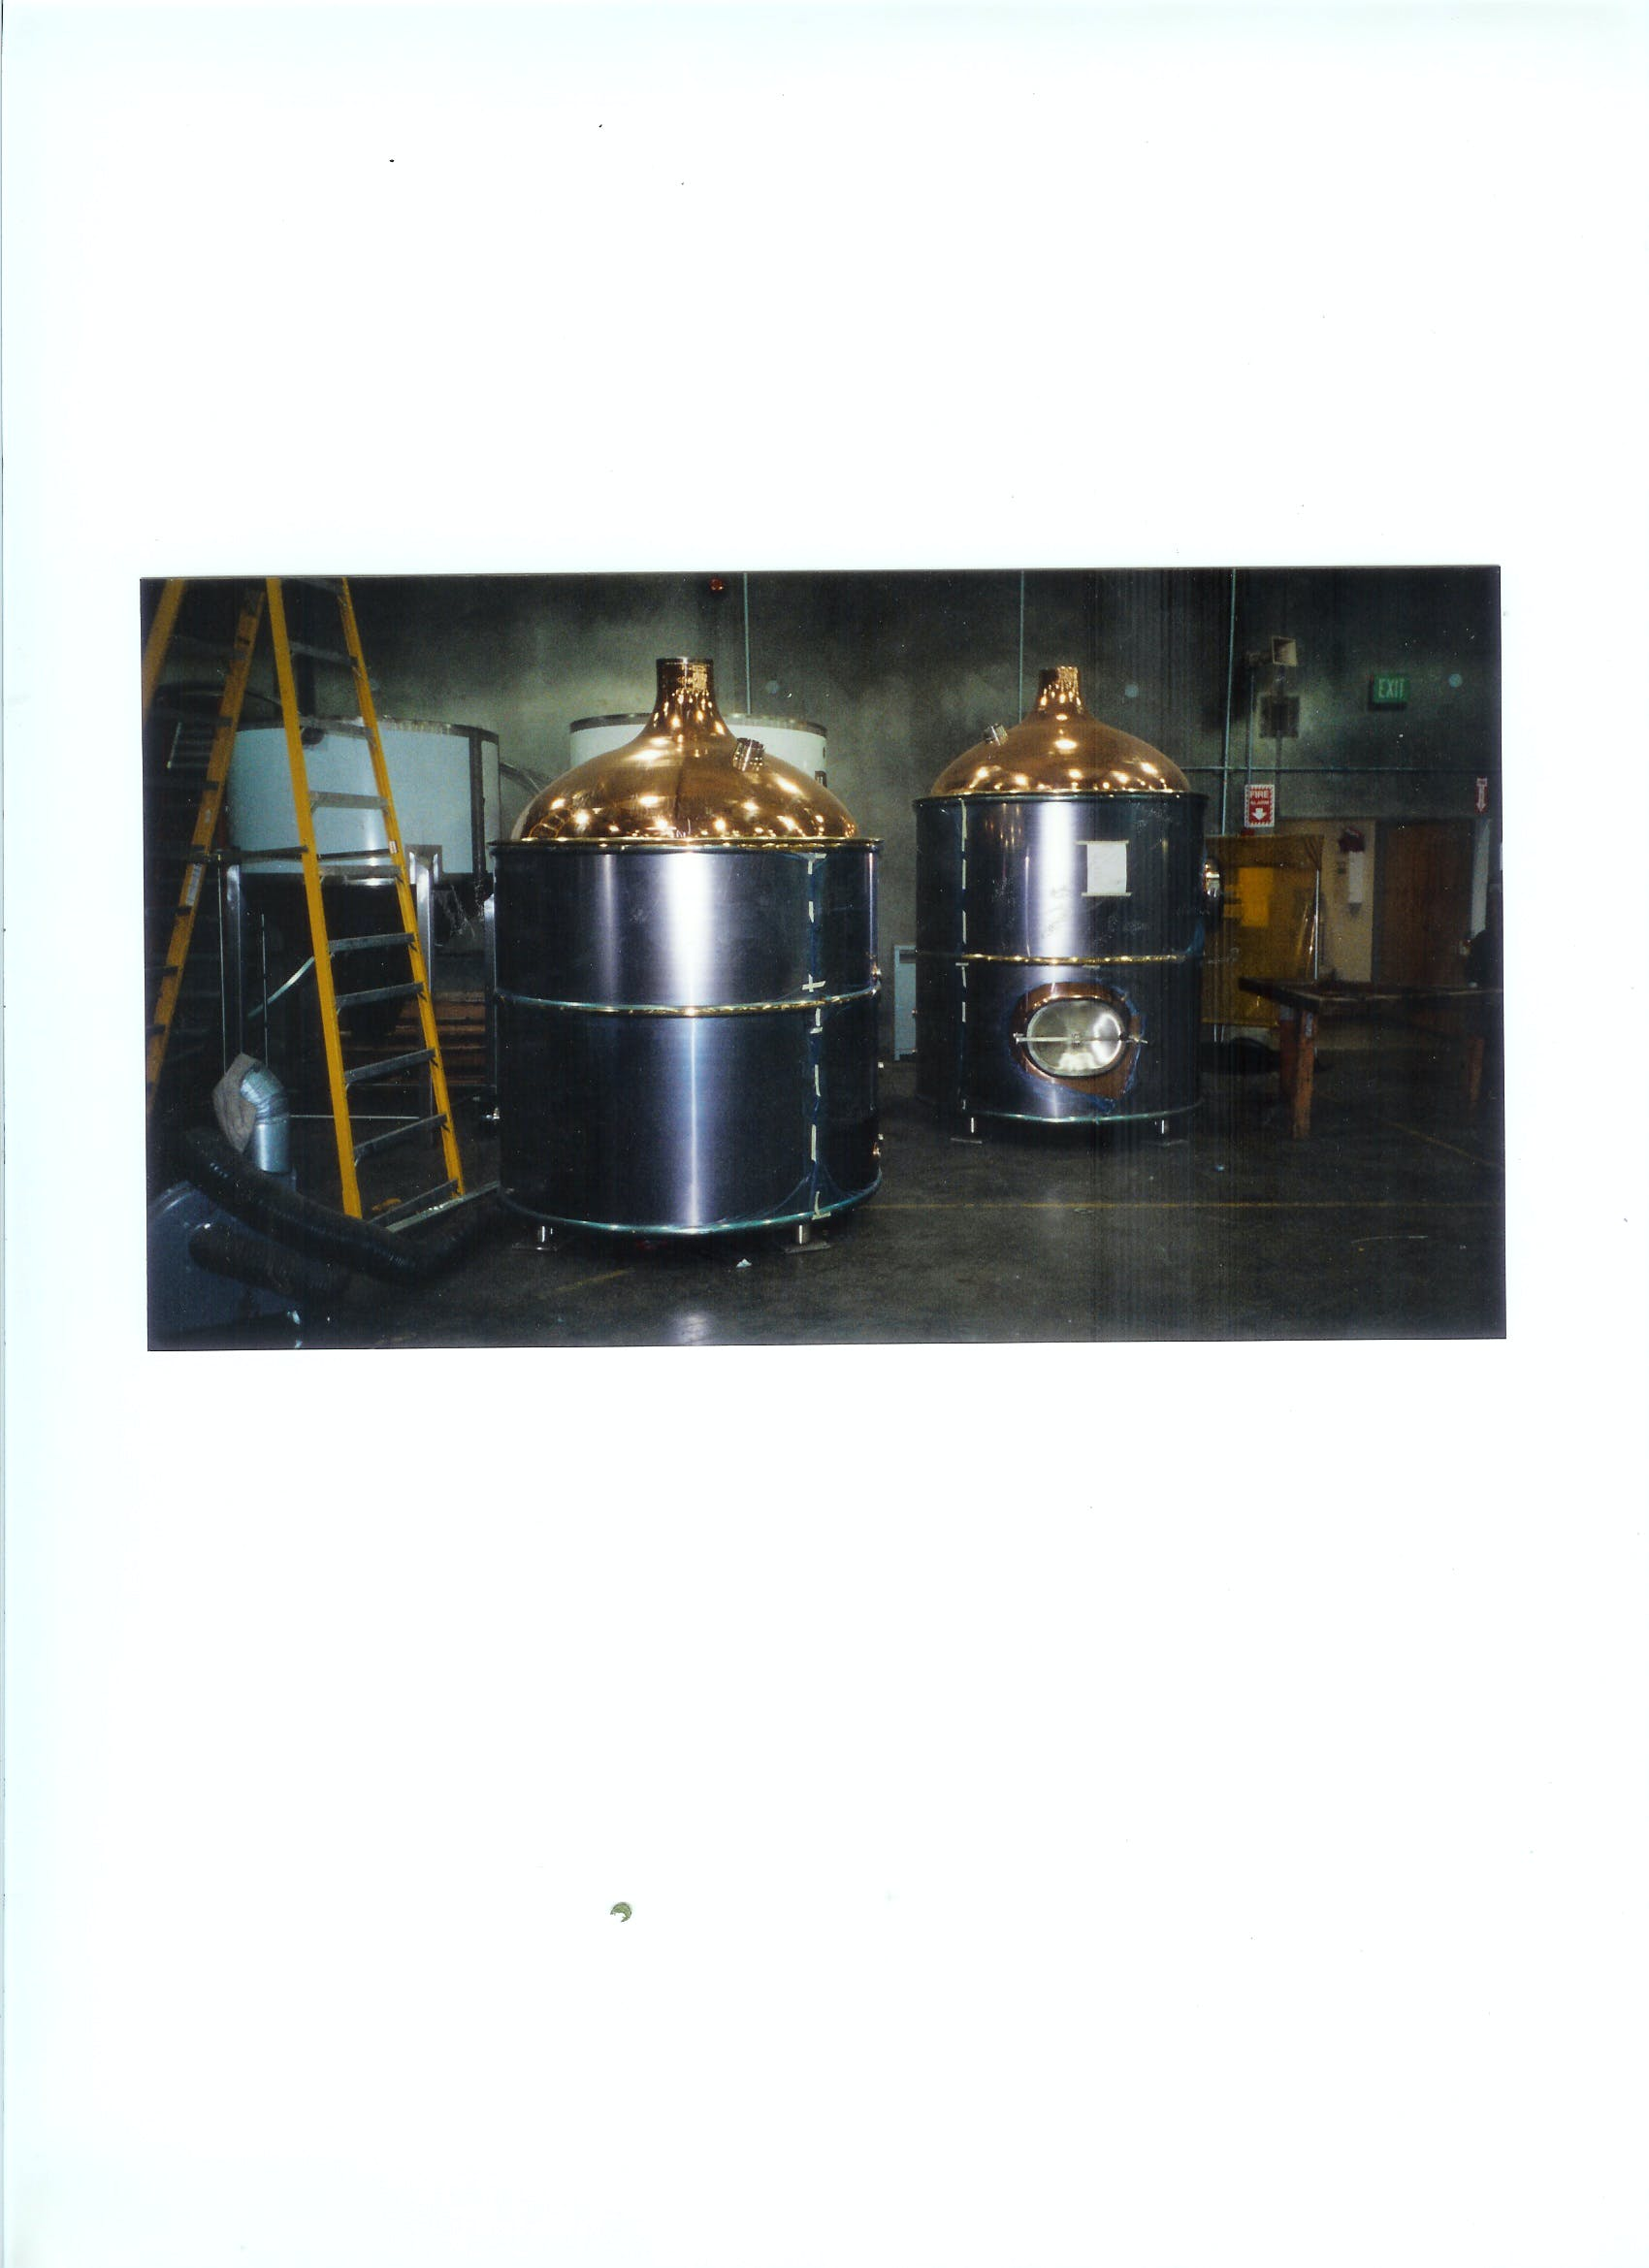 30 bbl  Brewhouse sold by Wine Country Stainless Steel Tank Co